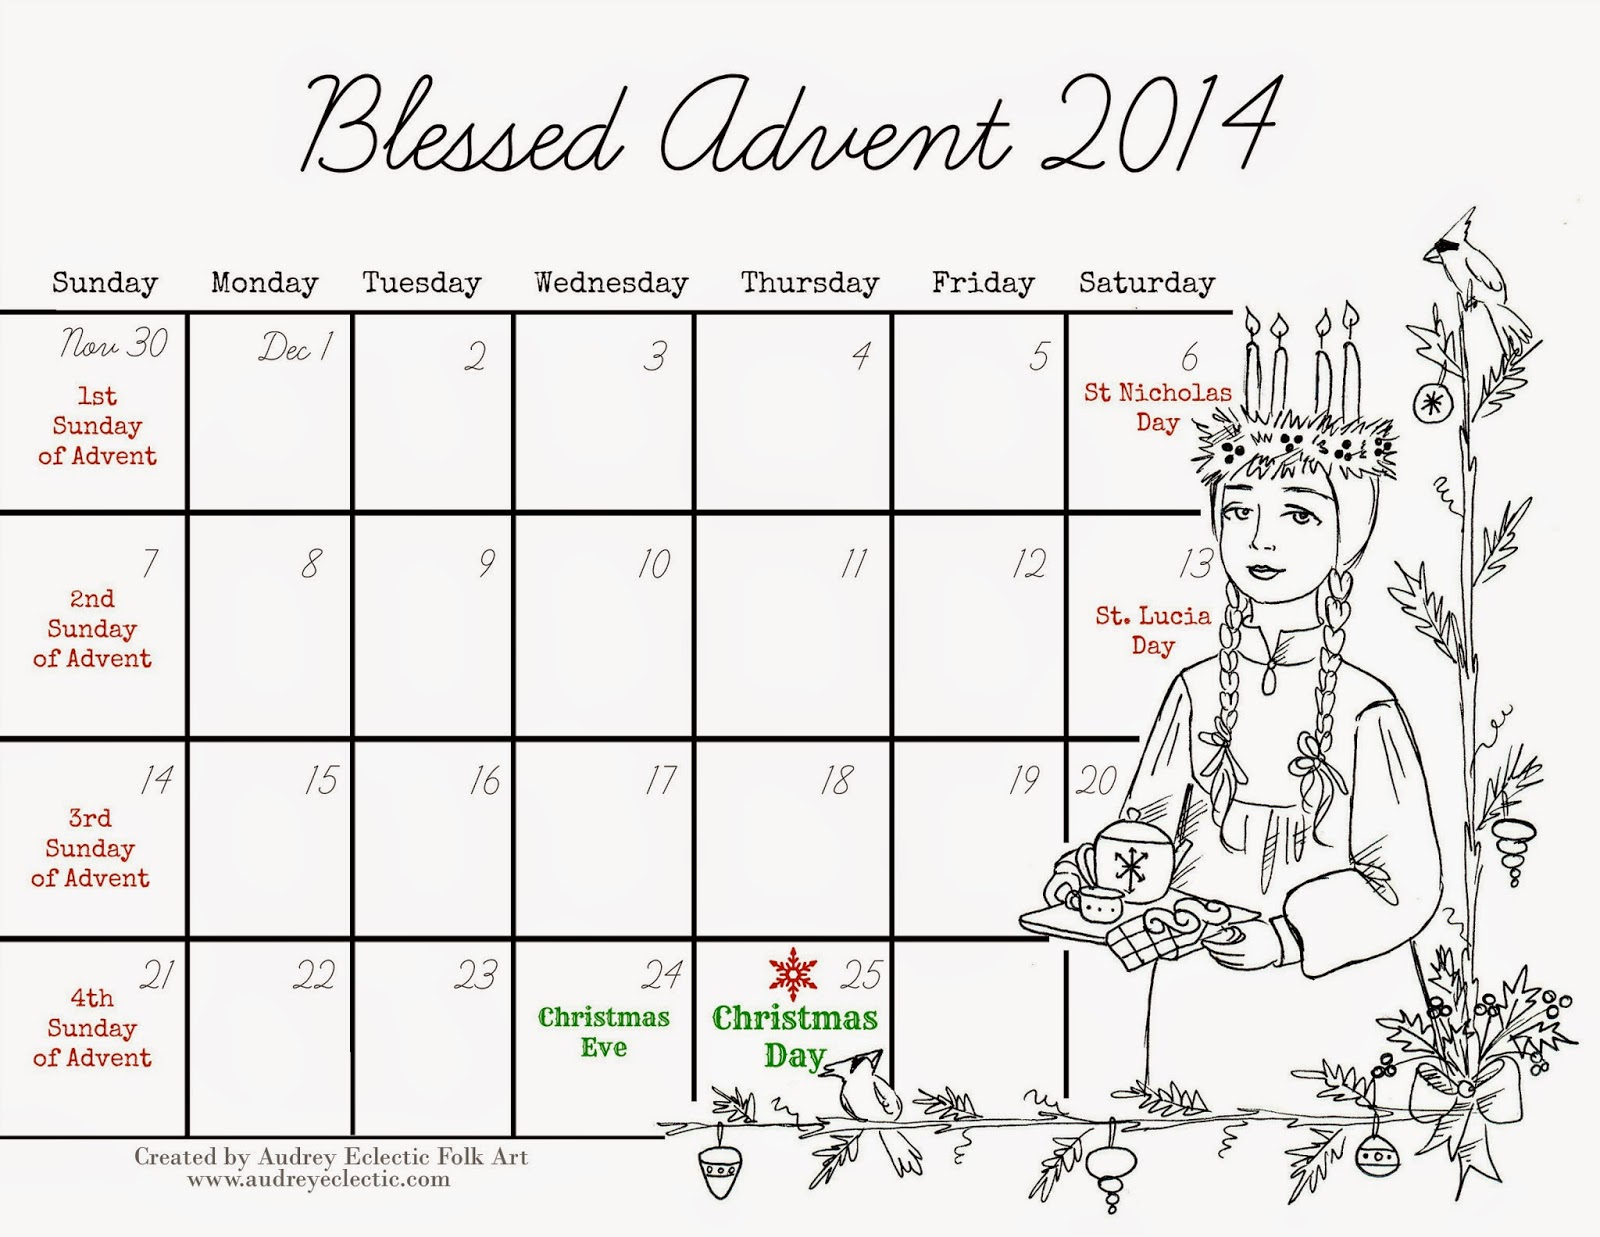 Free Coloring Pages For Advent – Pusat Hobi regarding Catholic Advent Calendar Printable